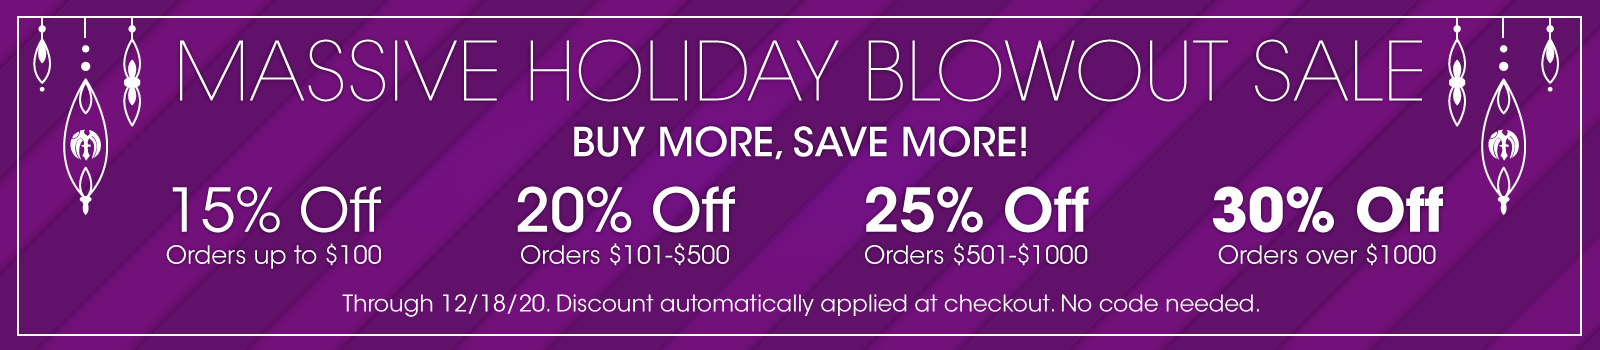 Massive Holiday Blowout | The More You Buy, The More You Save with Discounts up to 30% | Massive Burn Studios